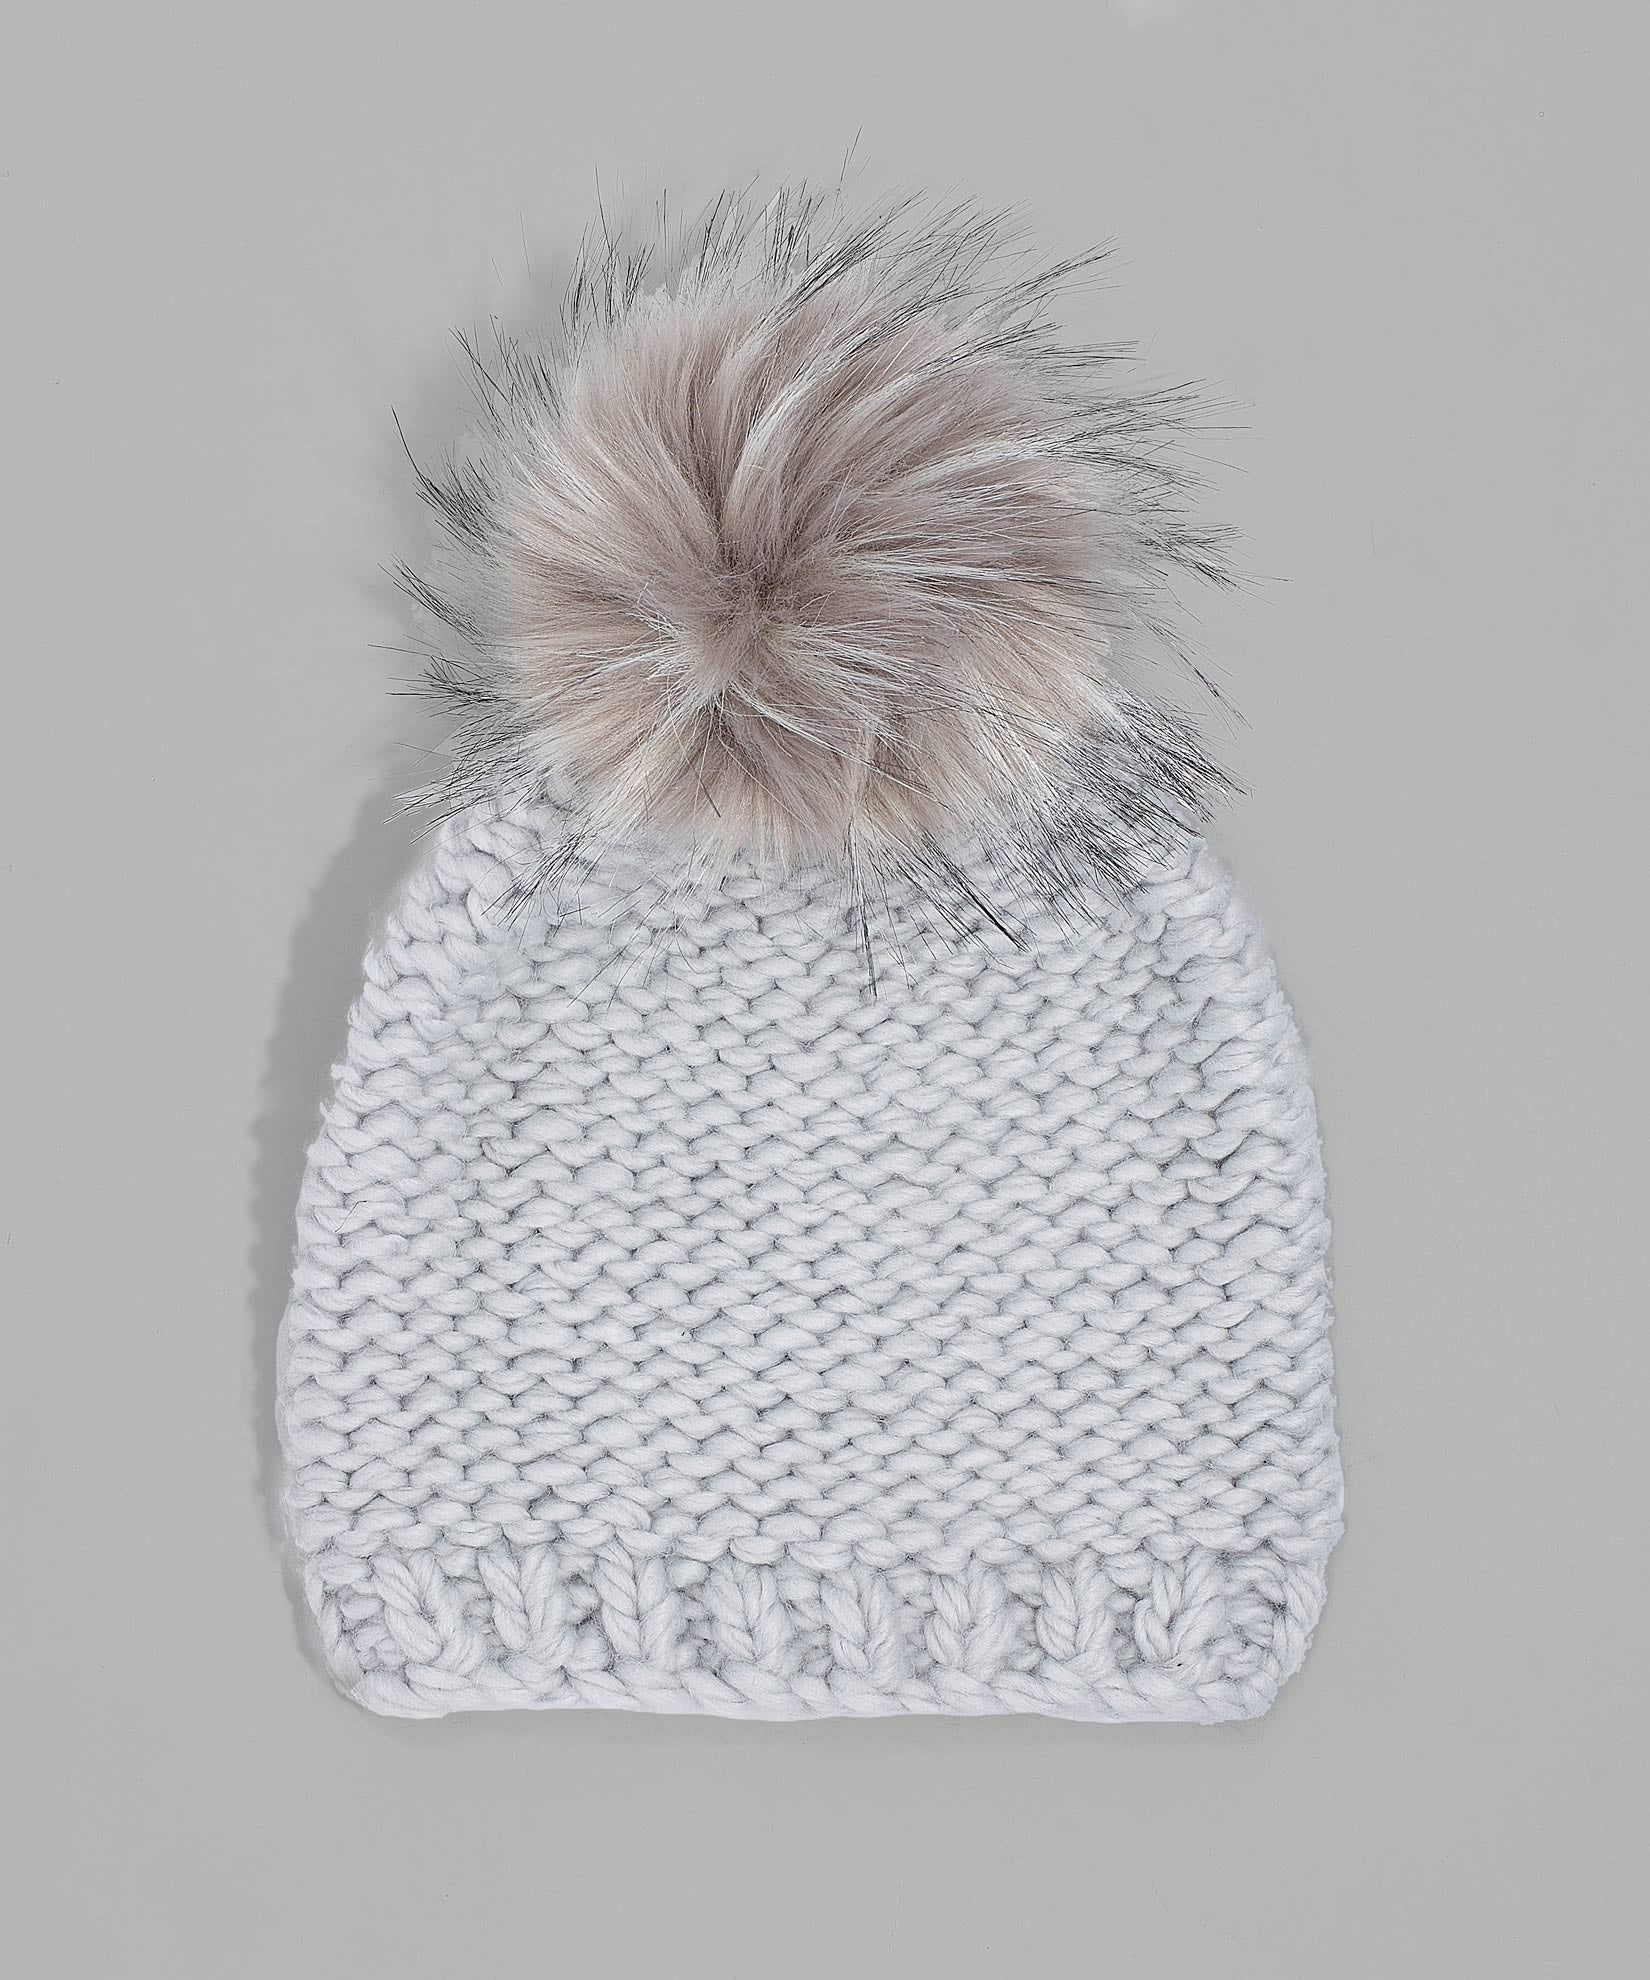 Echo Silver - Chunky Knit Beanie With Faux Fur Pom